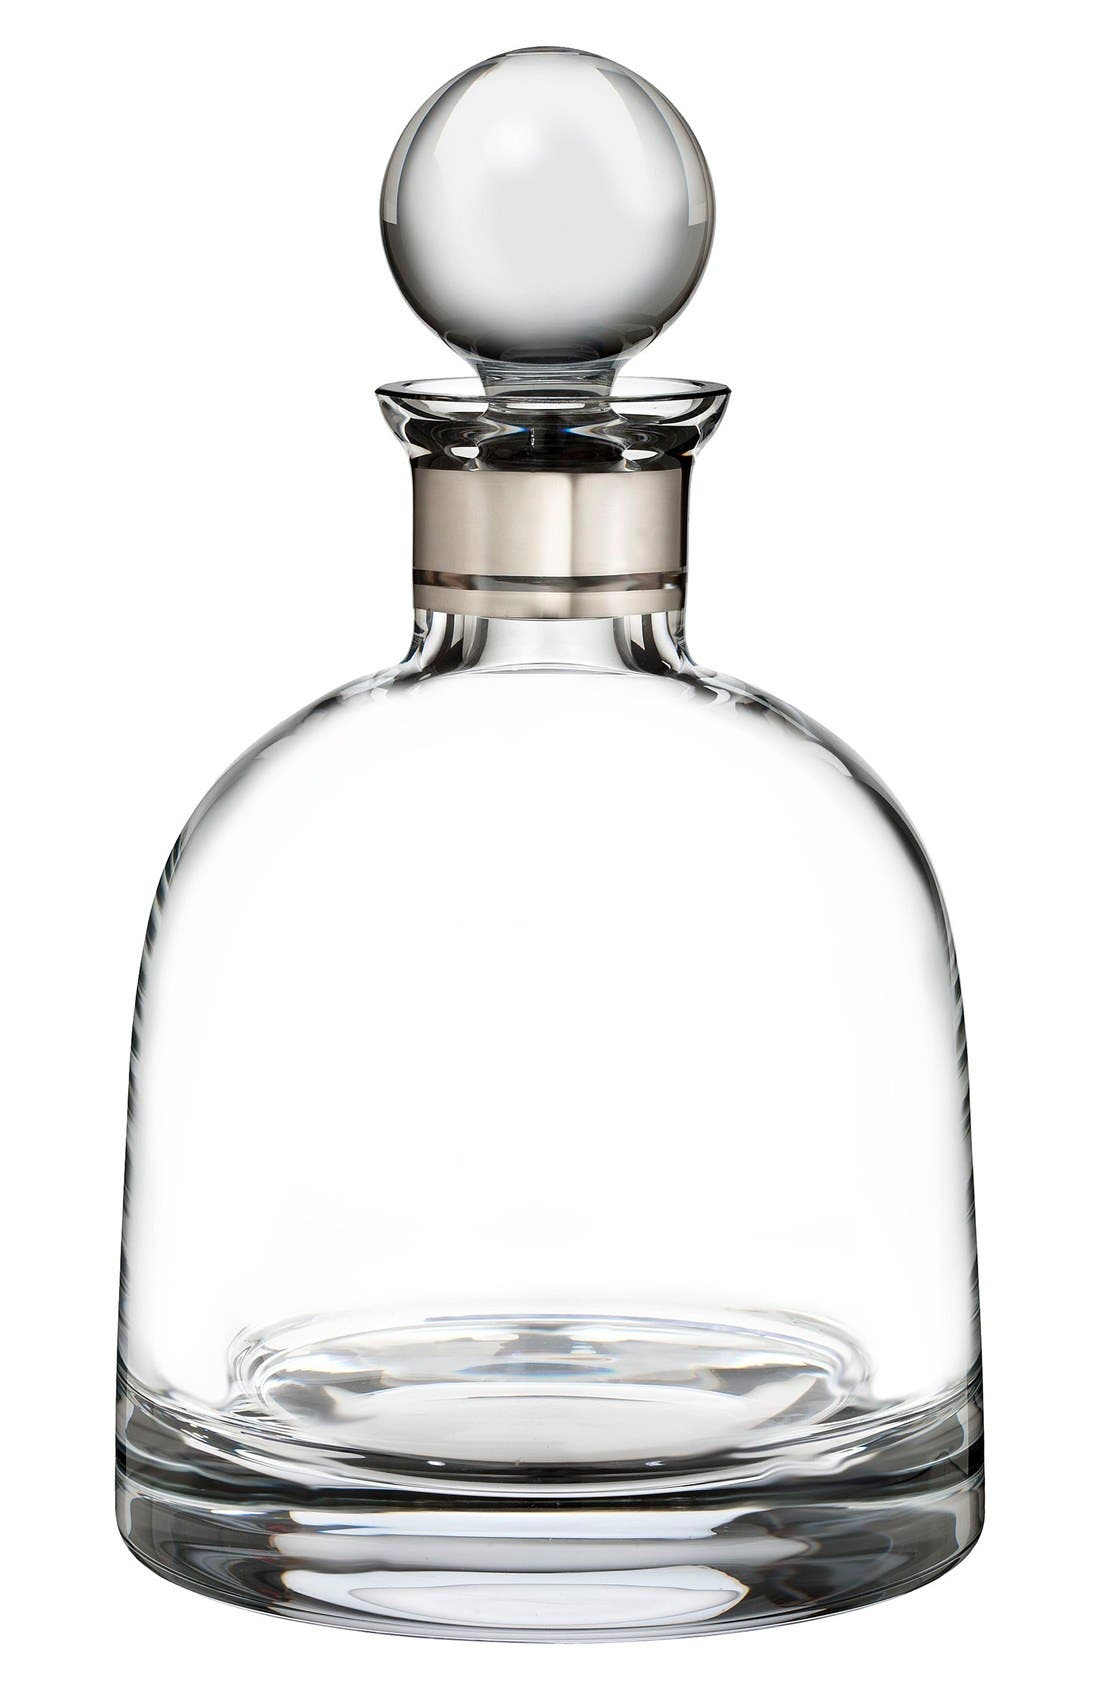 Waterford 'Elegance' Fine Crystal Decanter & Stopper